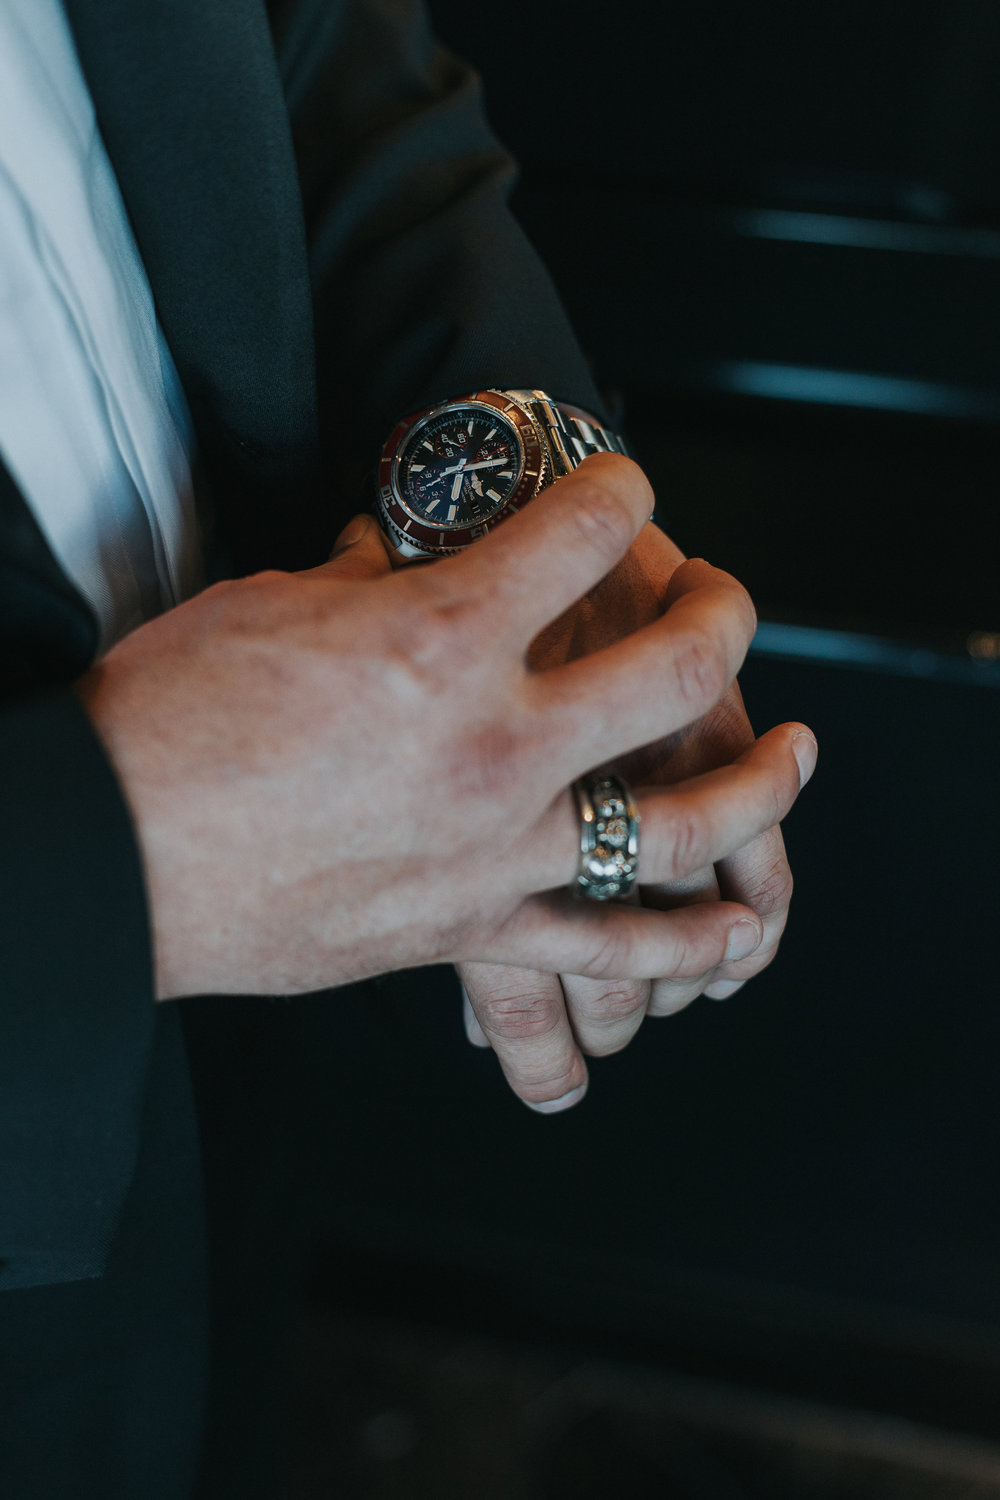 Groom's Watch and Accessories